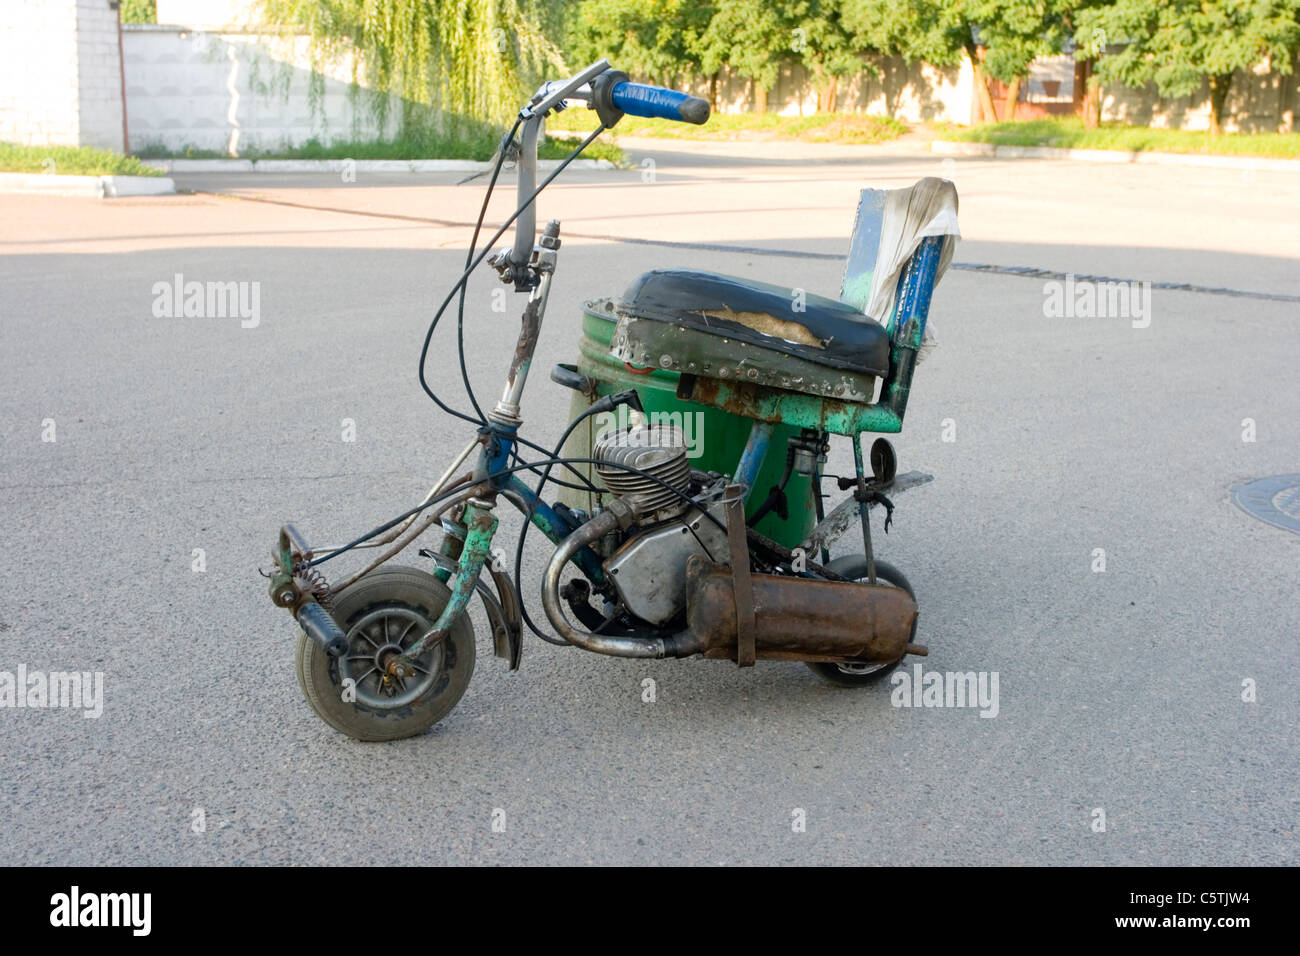 Three-wheeled scooter homemade simple design. Against the background of the asphalt - Stock Image